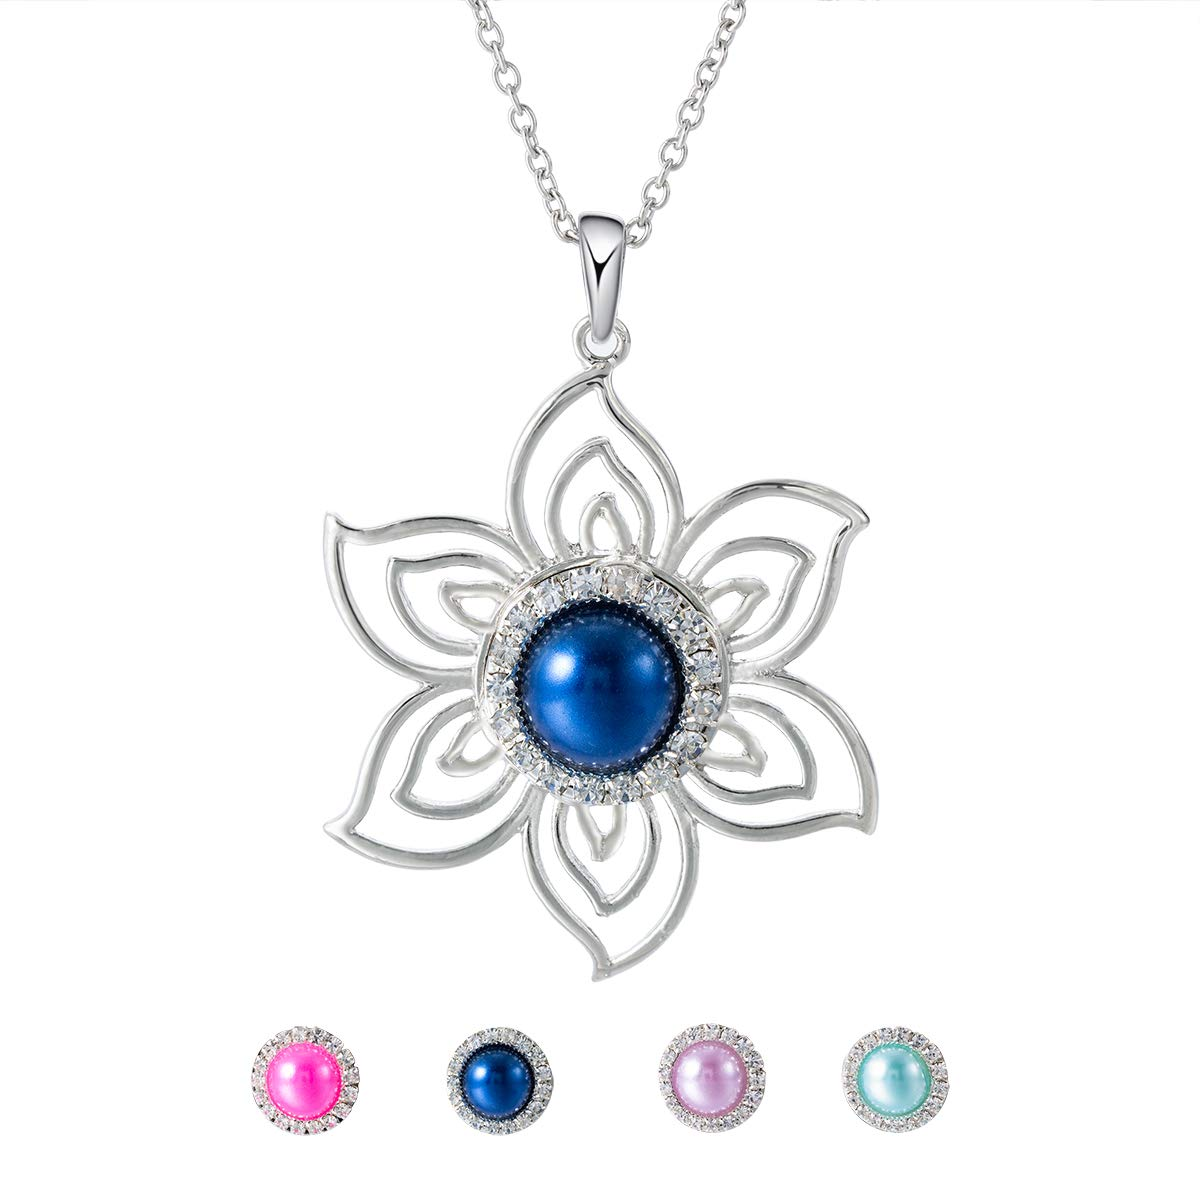 Interchangeable Necklace Ginger Chunk Charm with 4 Pearl Rhinestone Snap Buttons for Women